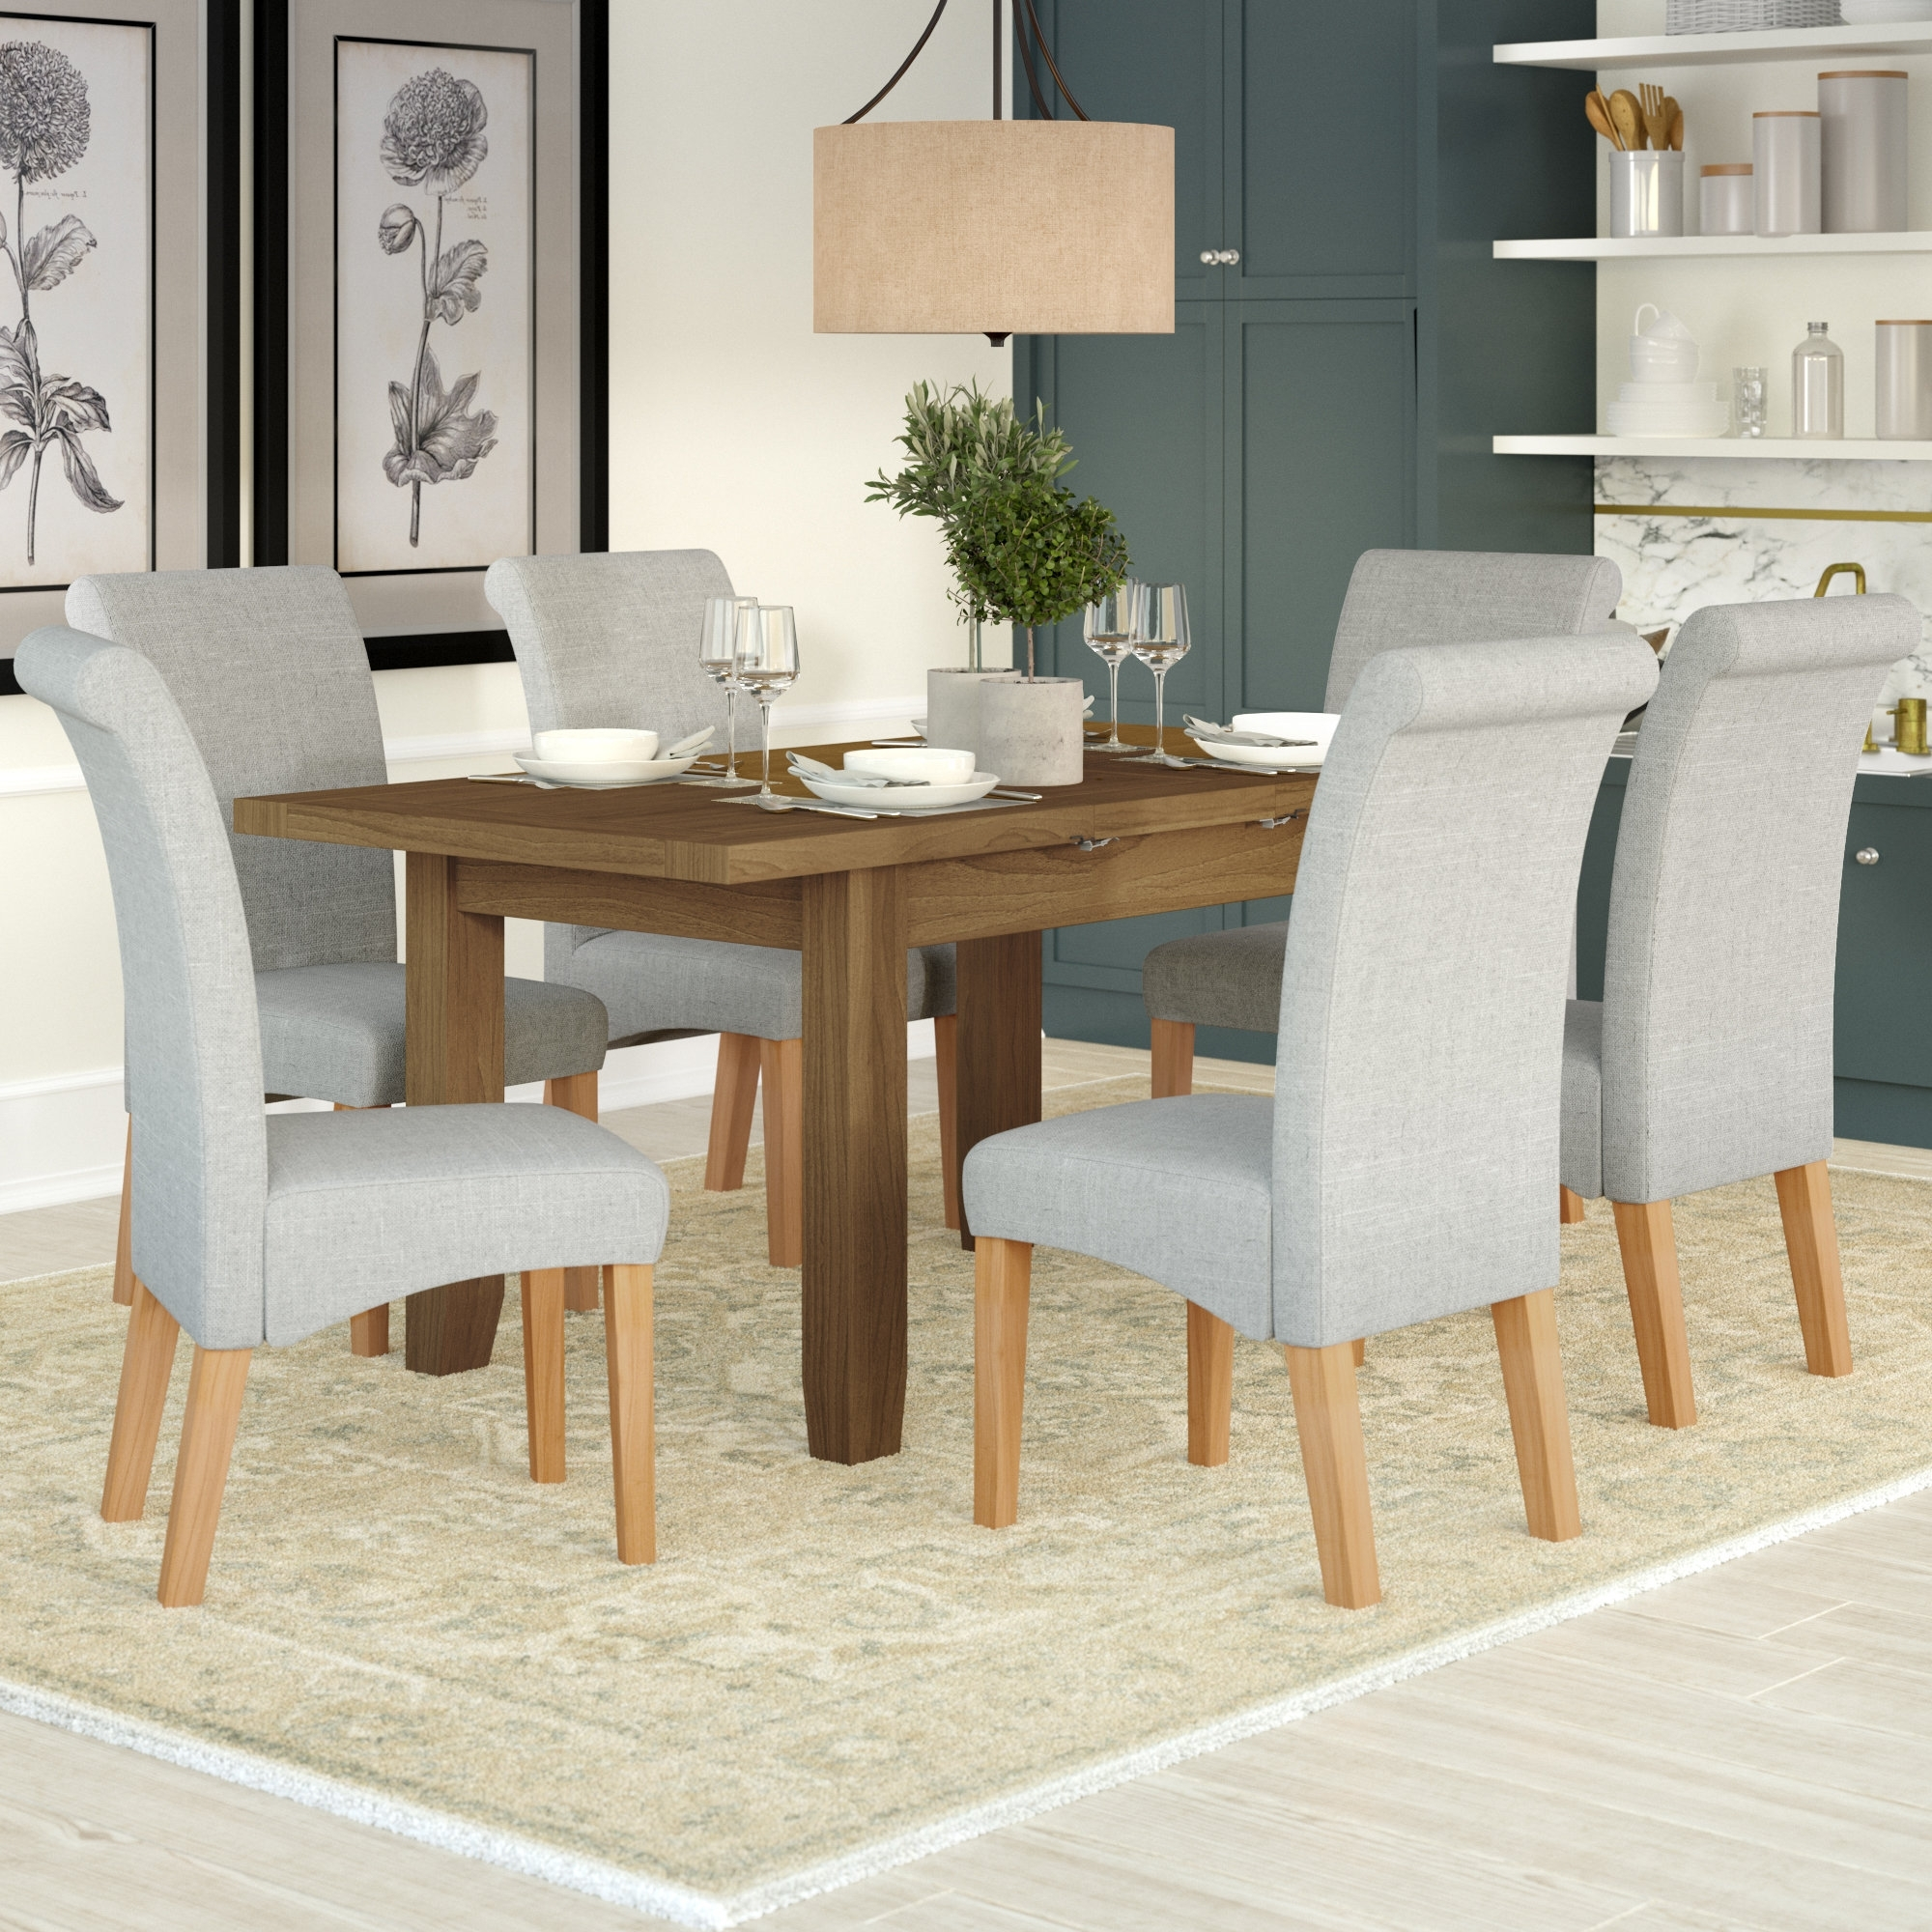 Three Posts Berwick Extendable Dining Table And 6 Chairs & Reviews For Recent 6 Chairs Dining Tables (View 23 of 25)